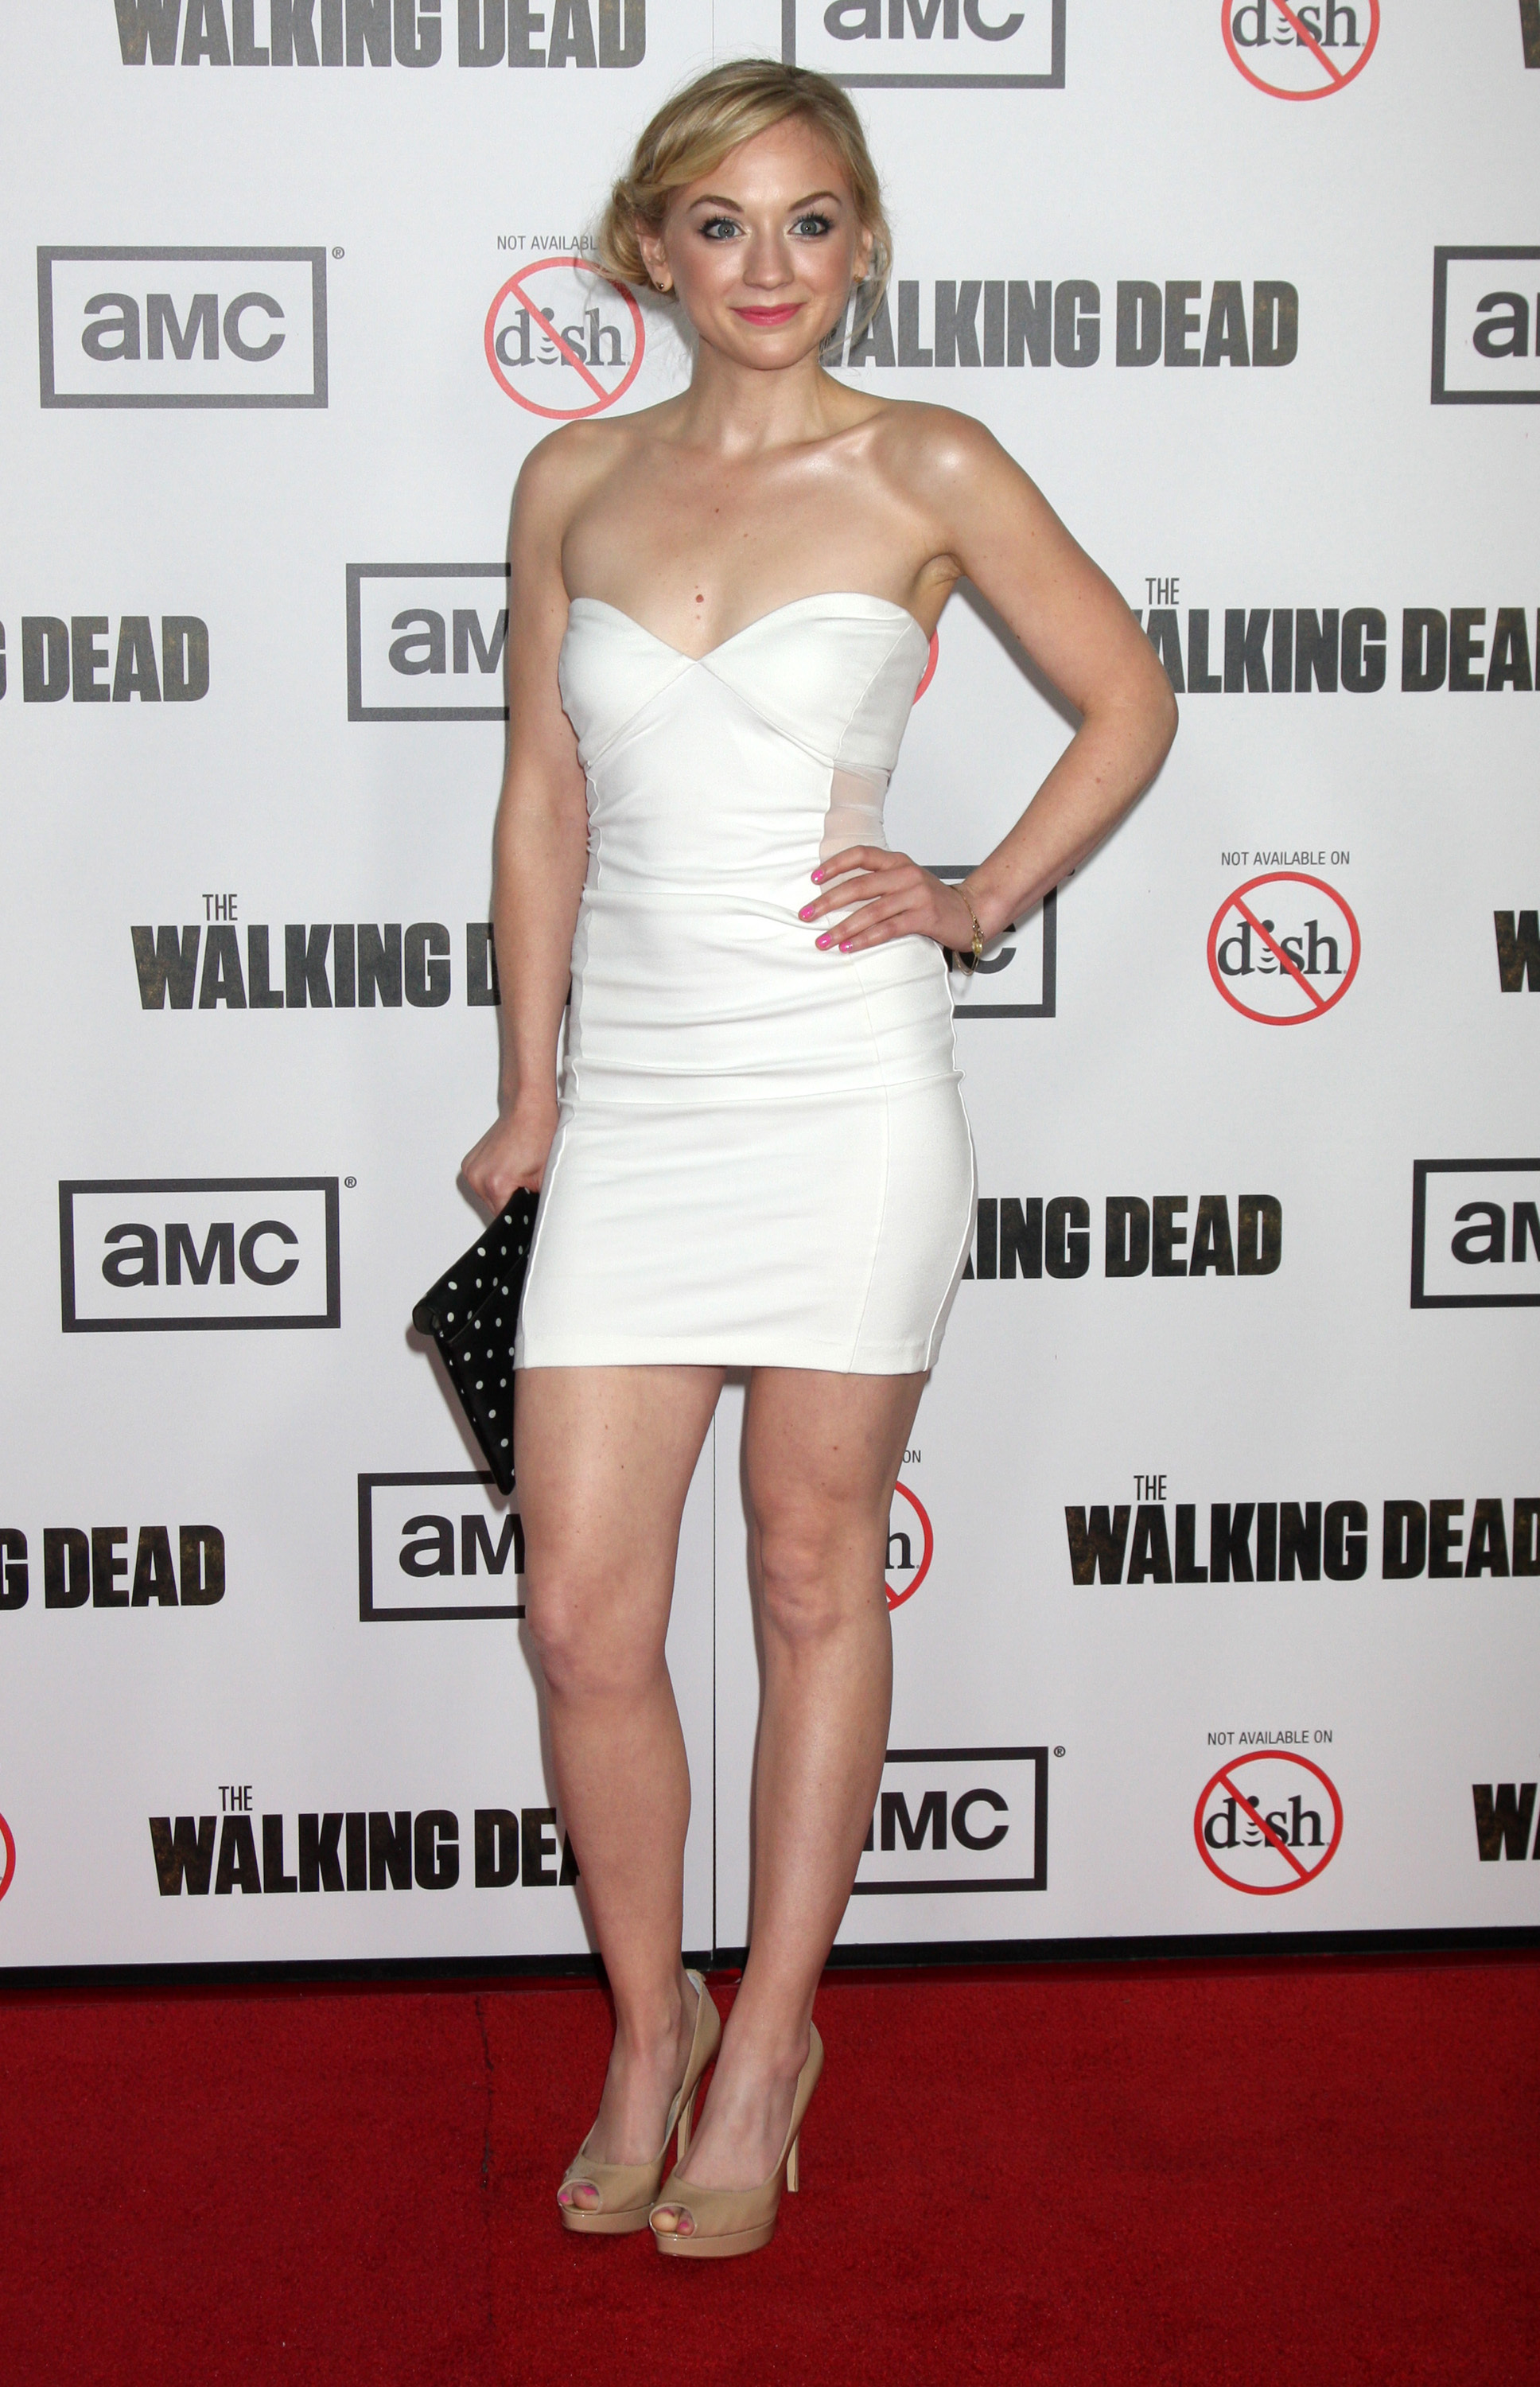 Emily Kinney hot - The Walking Dead